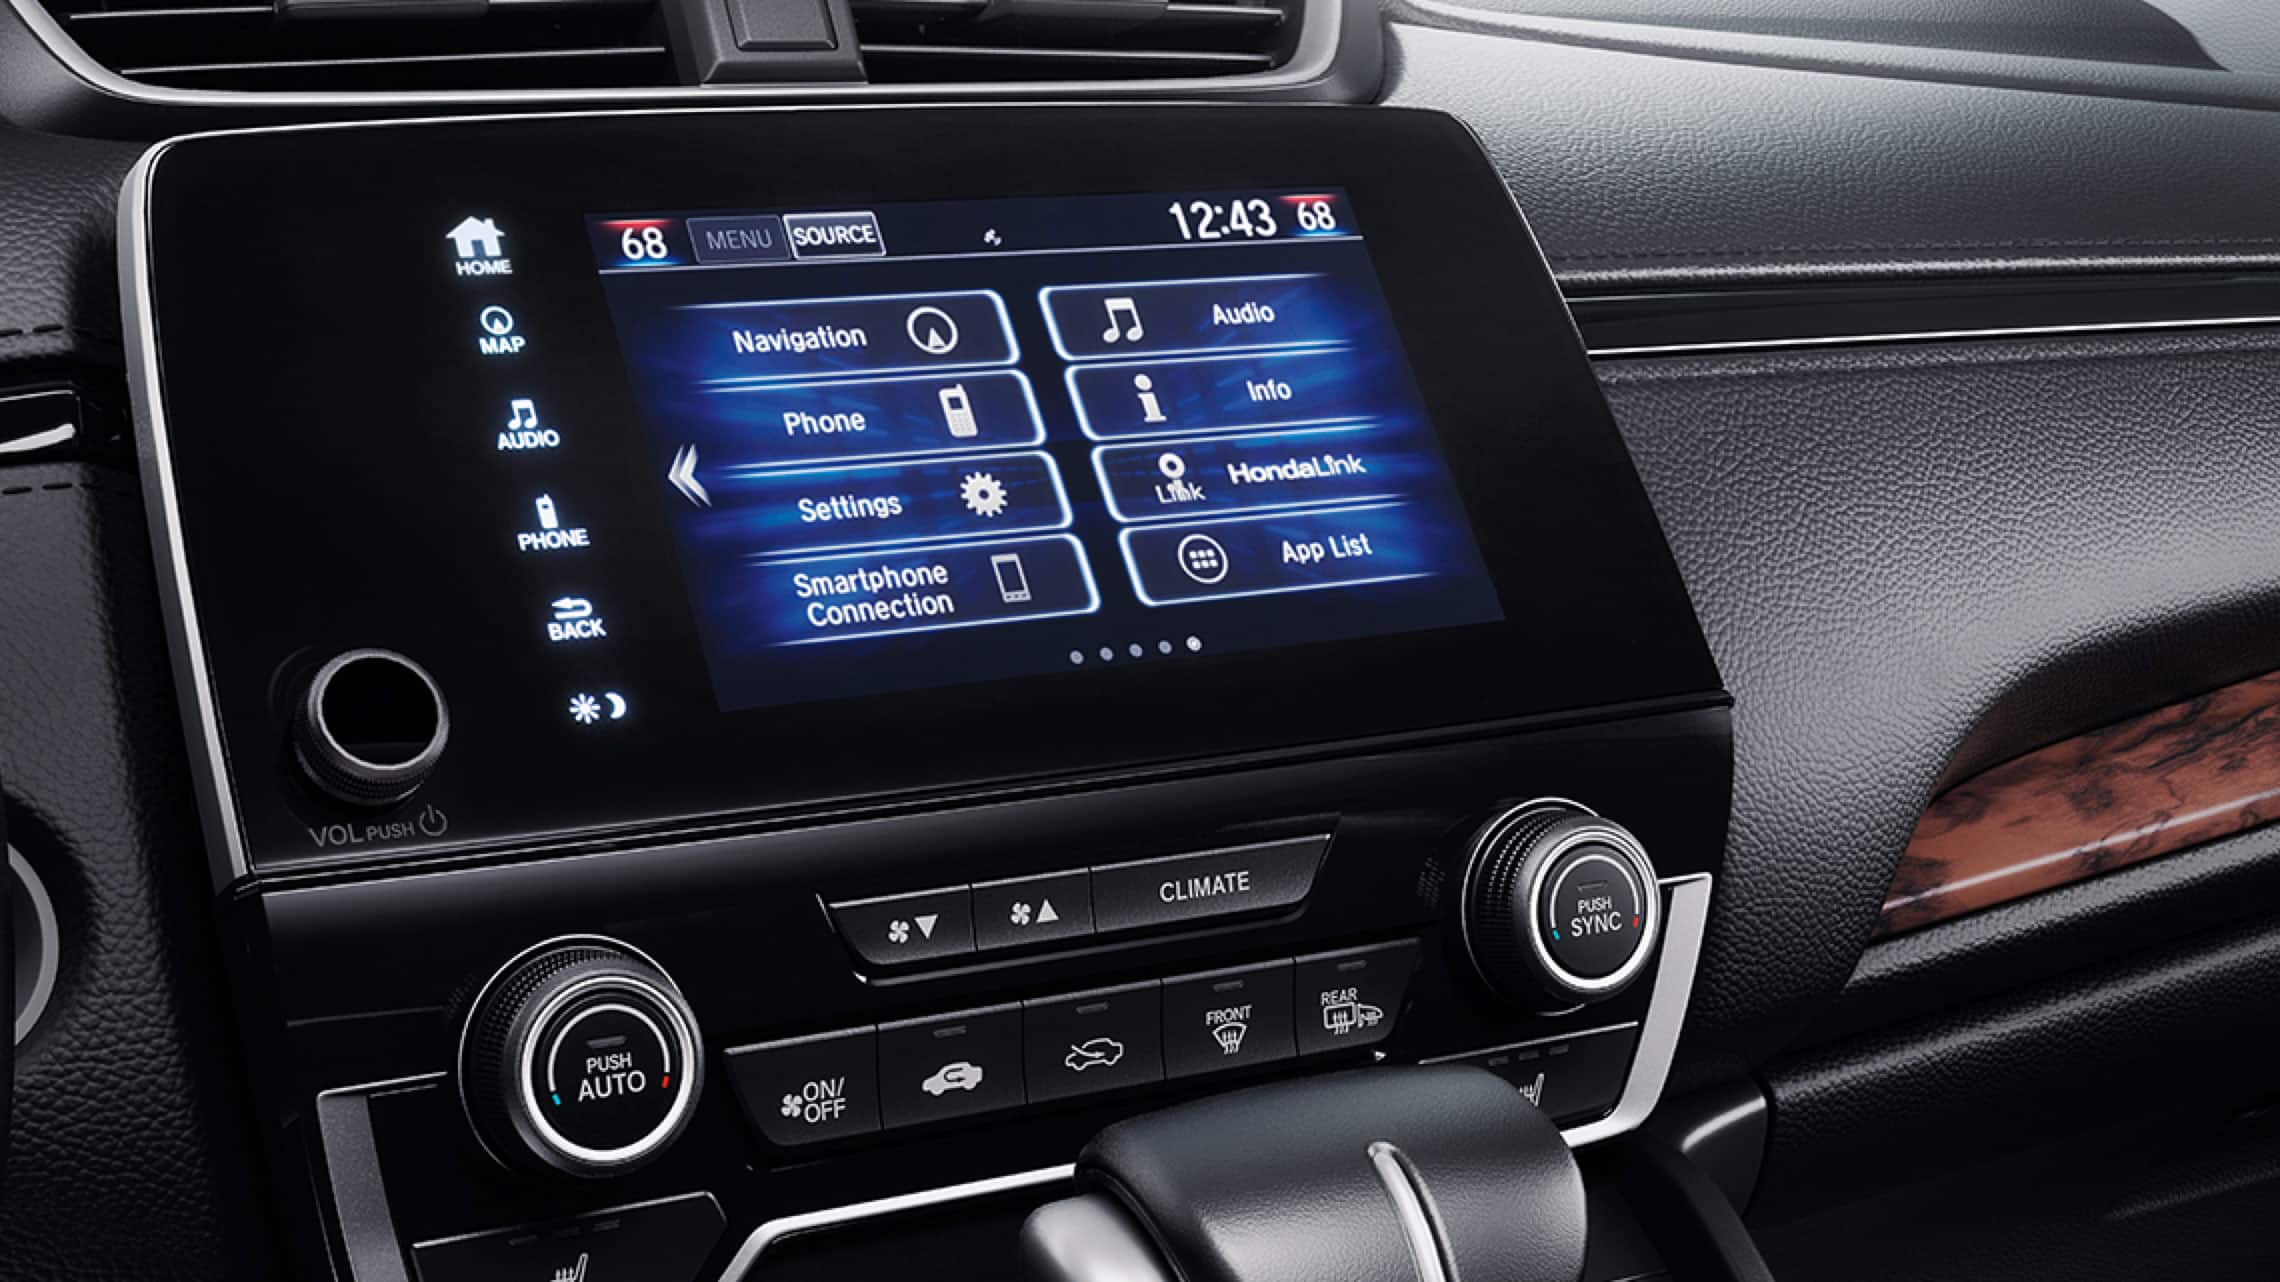 7-inch Display Audio touch-screen in the 2019 Honda CR-V.